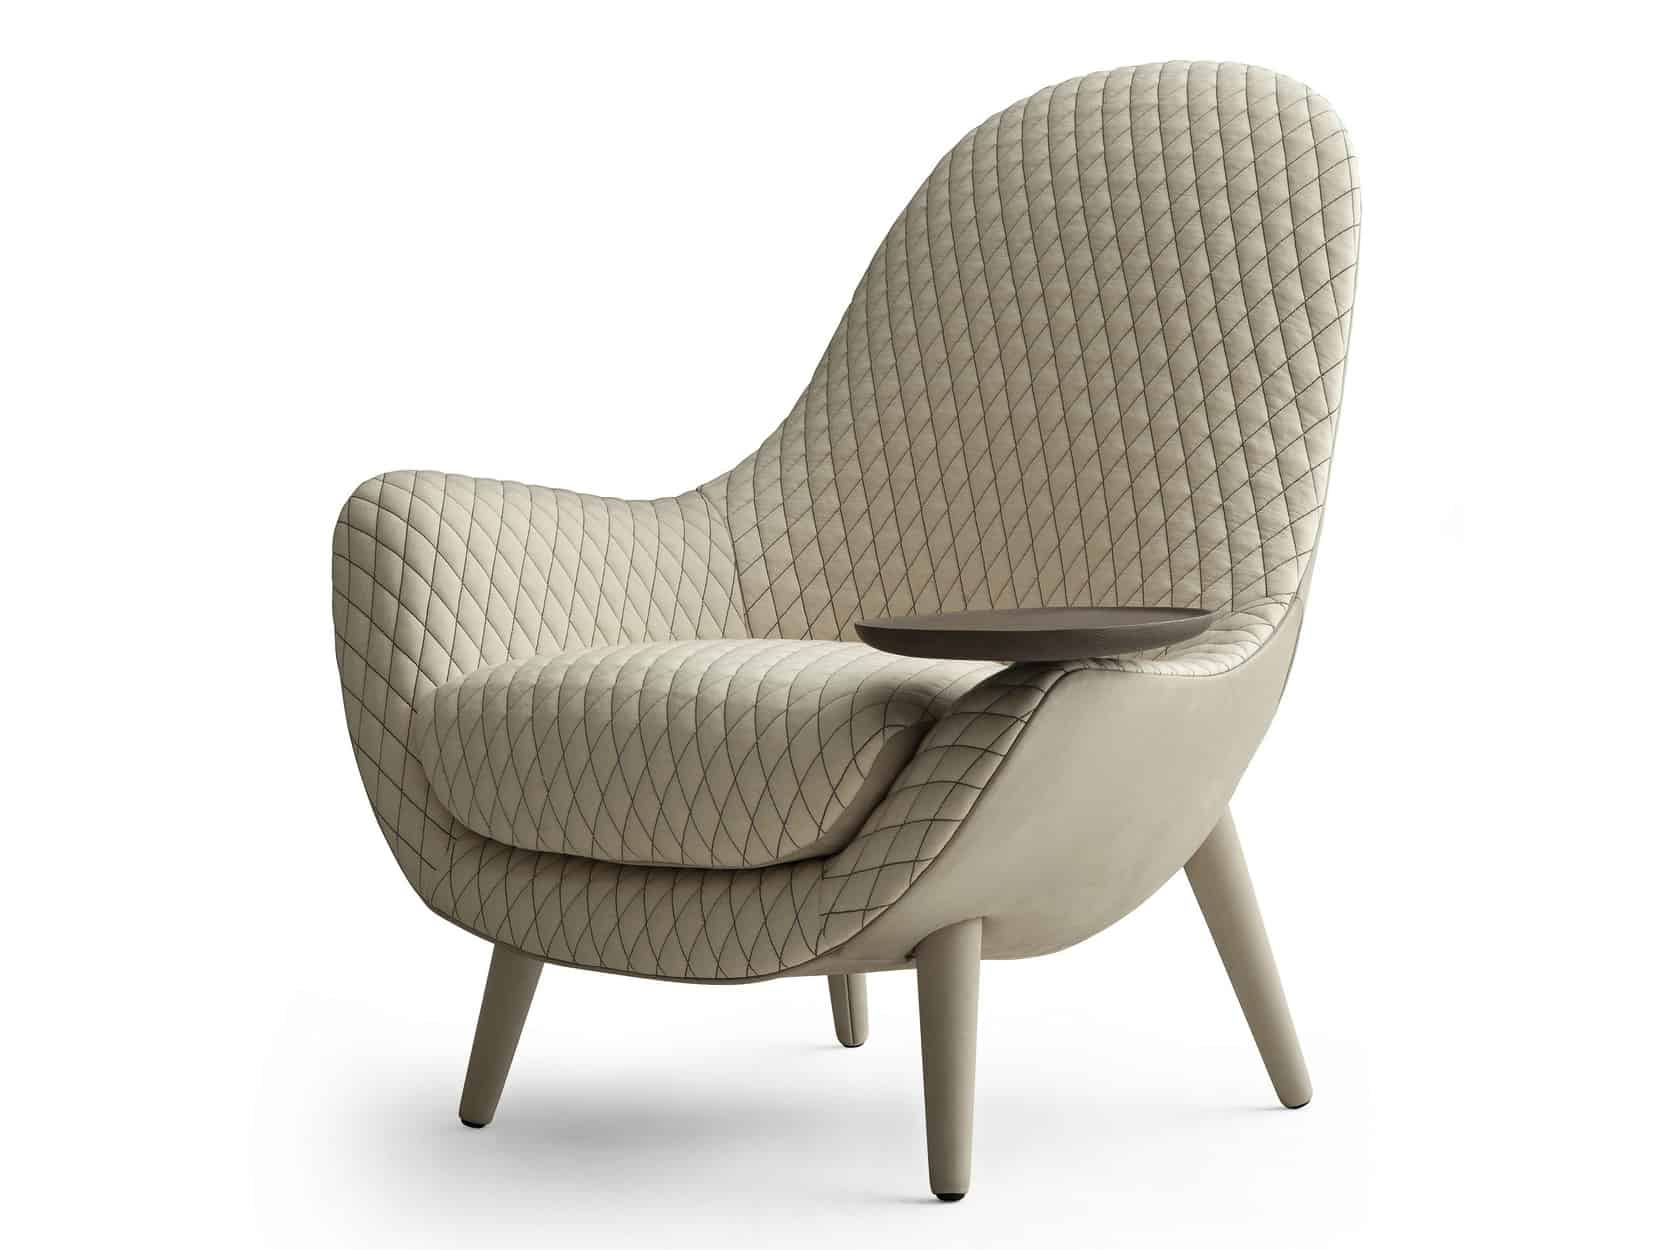 Lounge Armchair Mad King By Marcel Wanders For Poliform